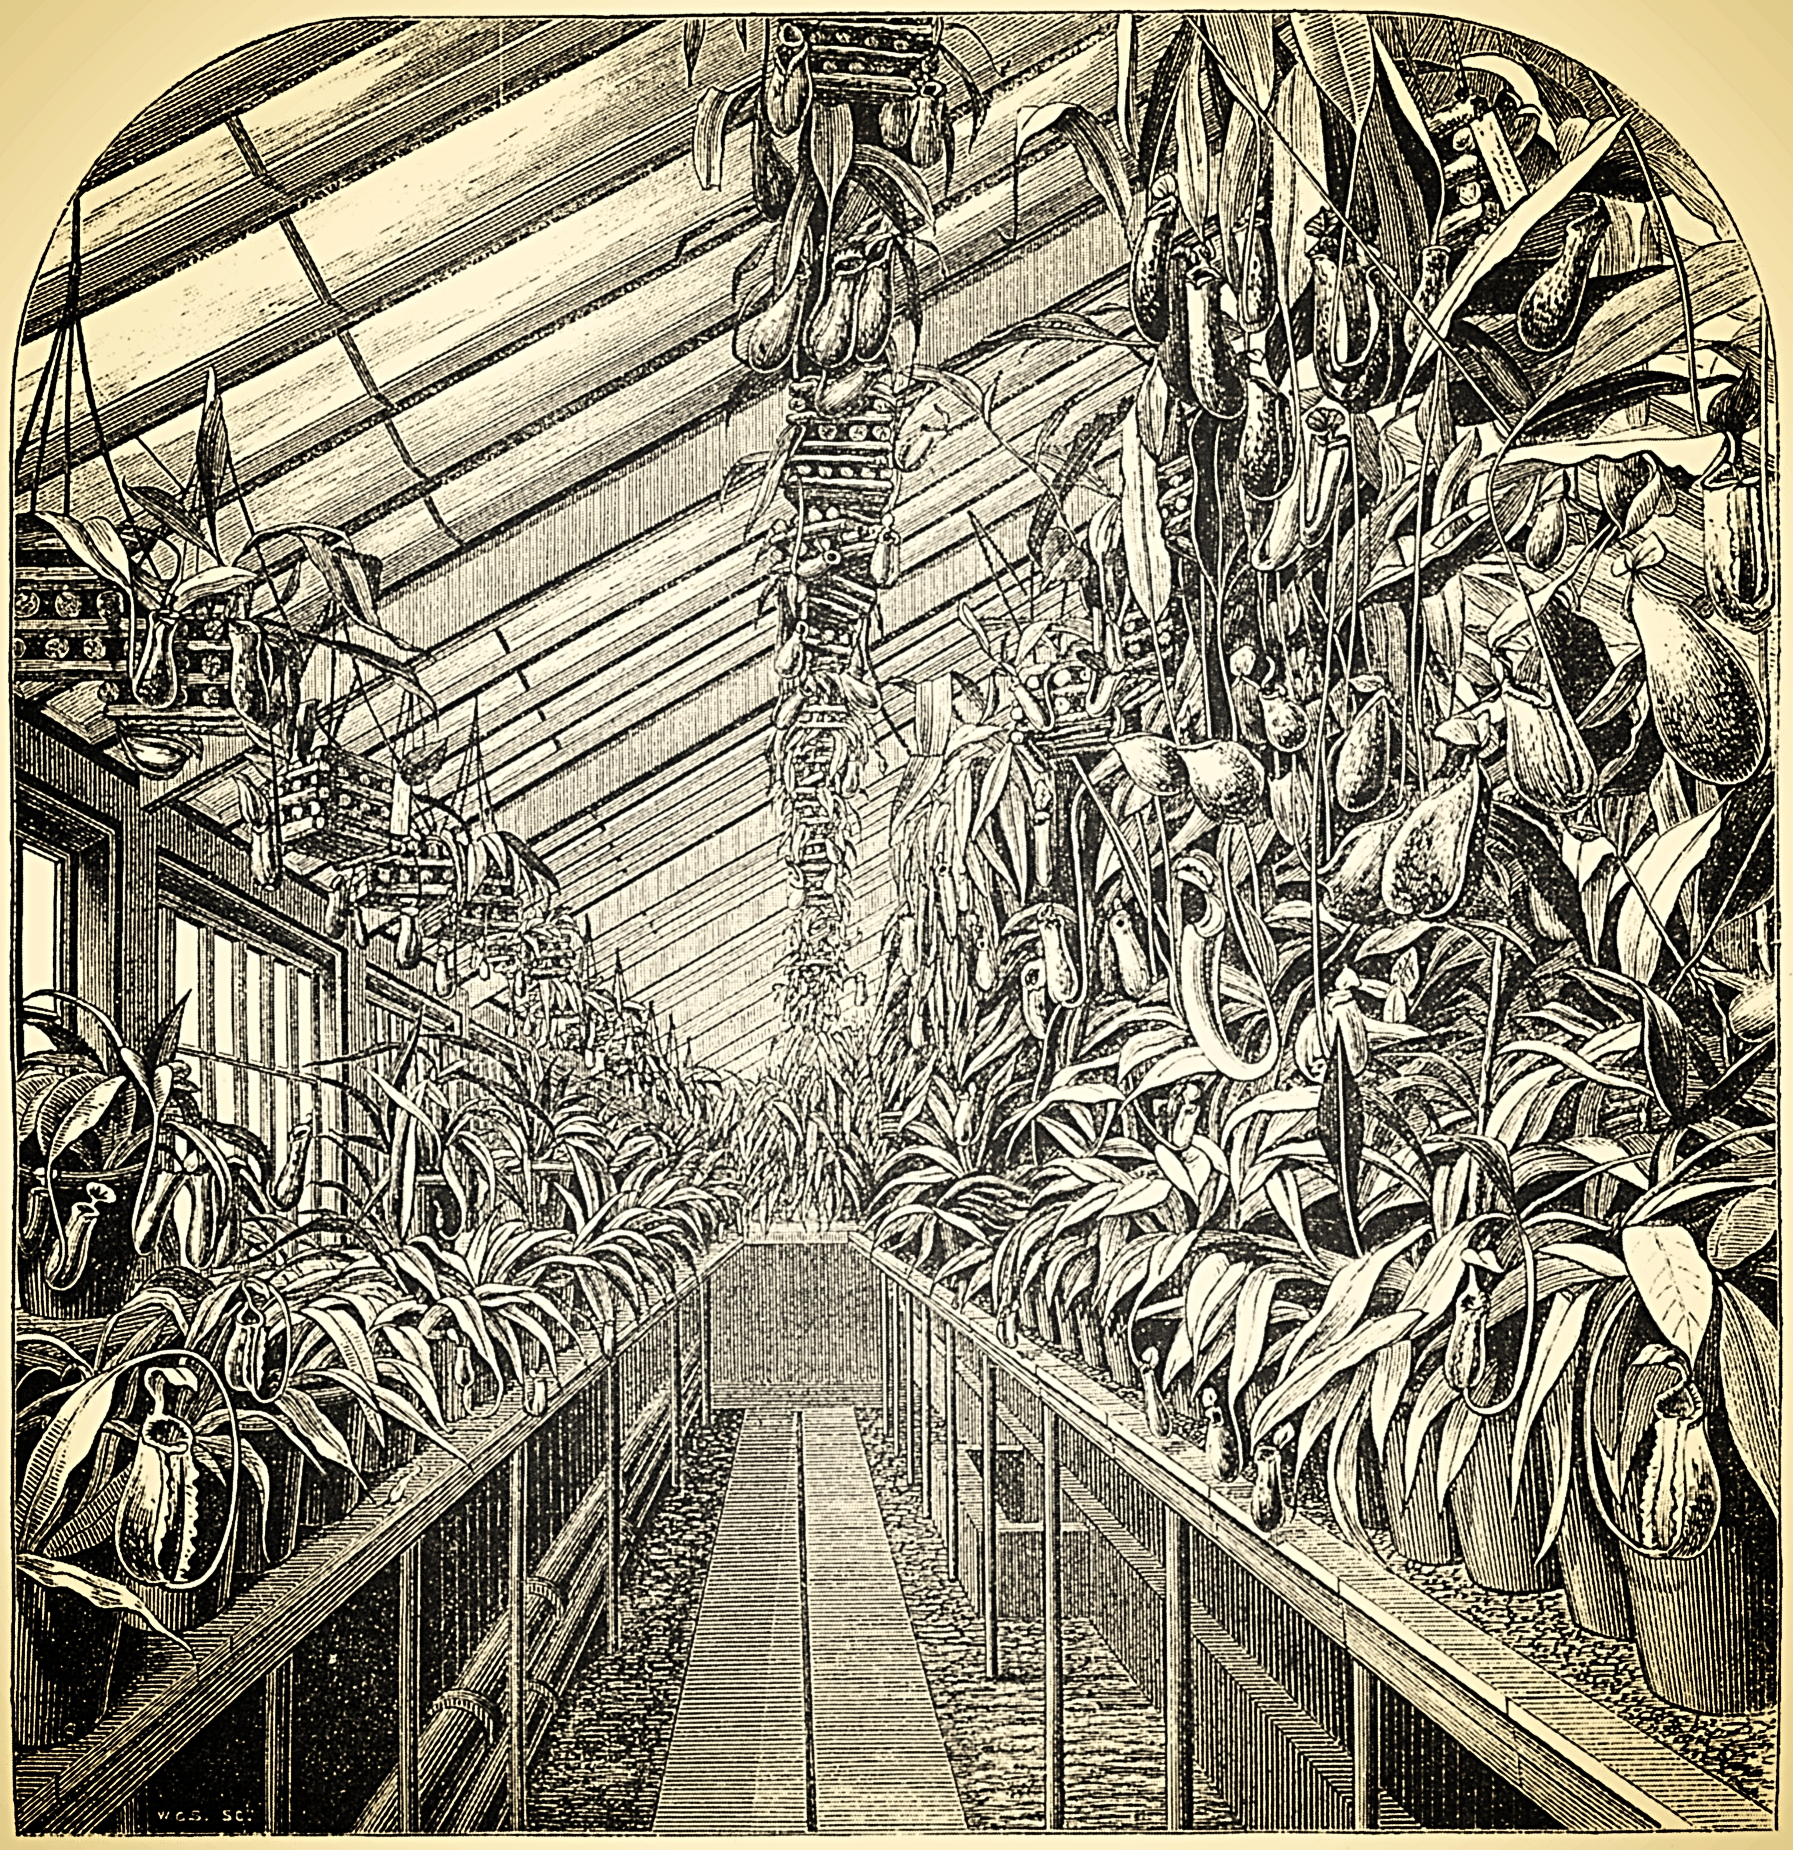 """Engraving of the James Veitch & Sons' Nepenthes House in the late 19th century (Moore, """"The Gardeners' Chronicle"""", March 1872)"""